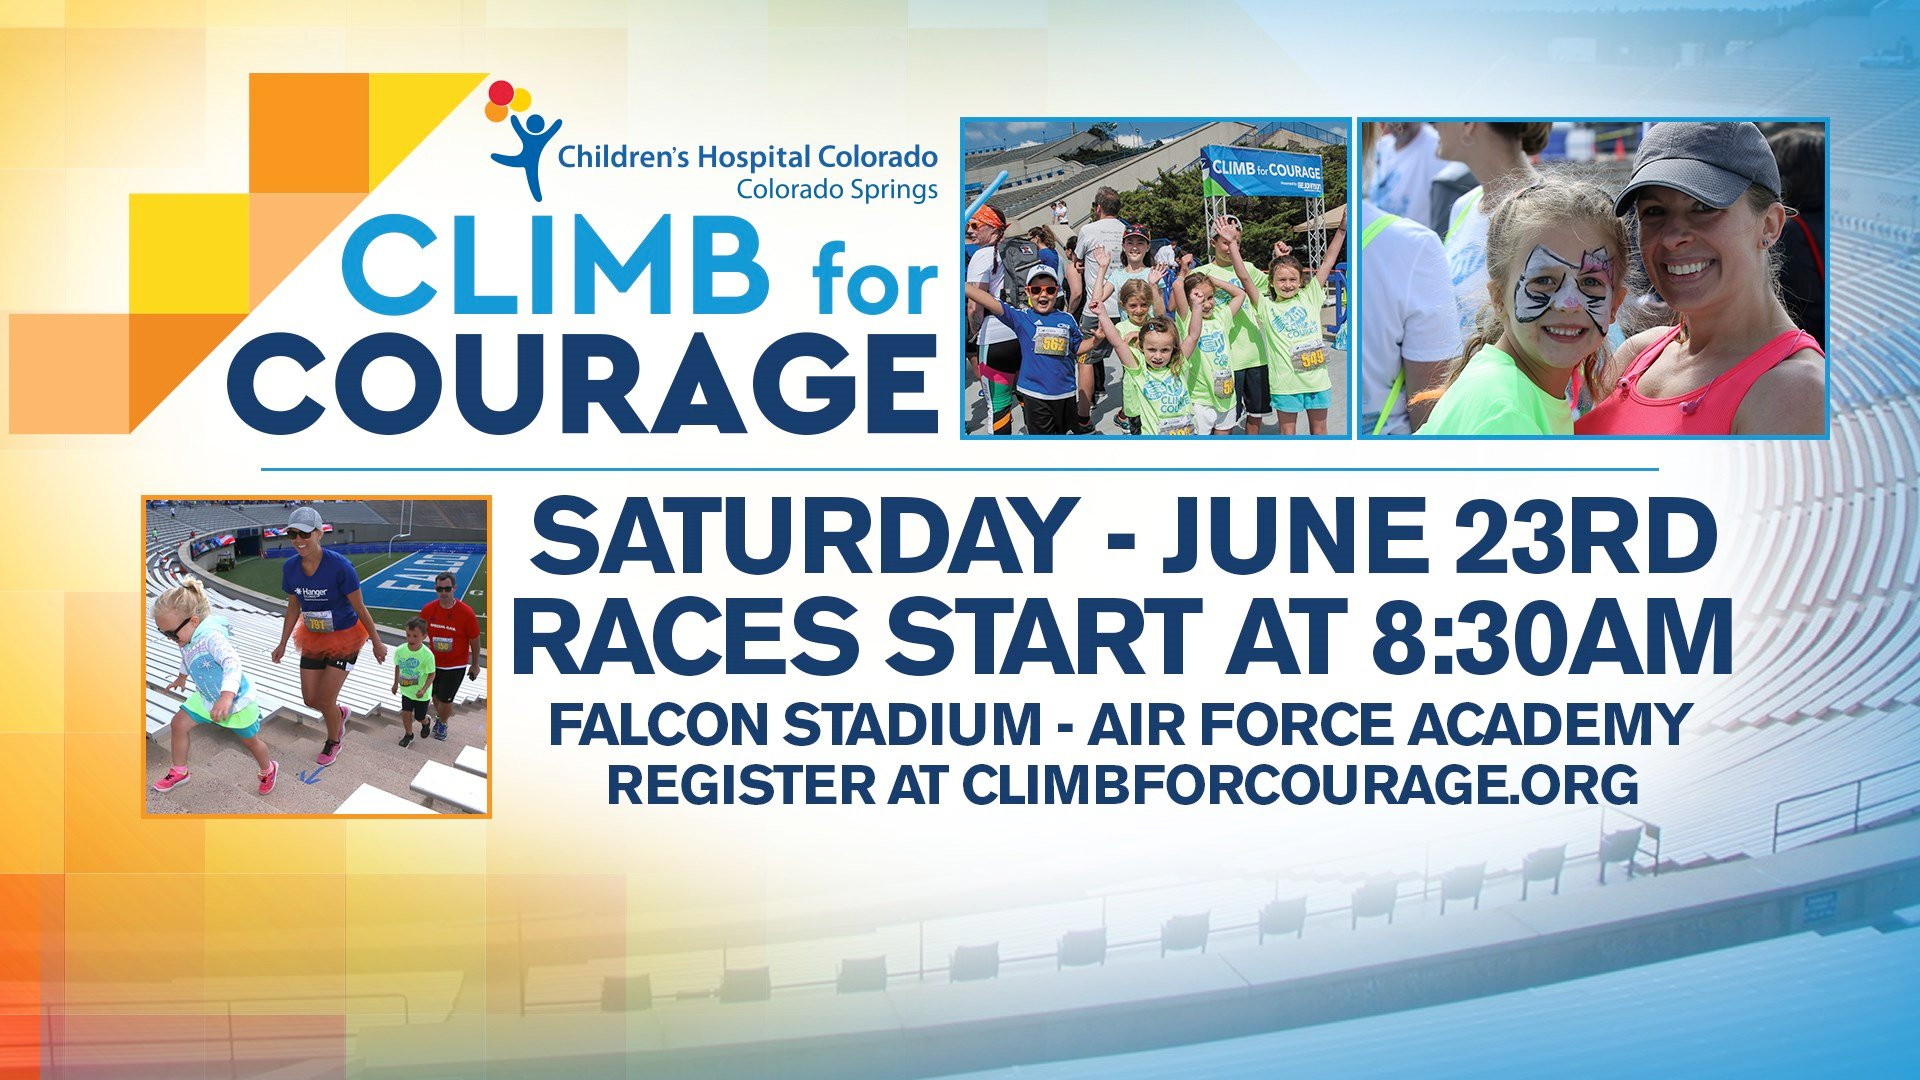 This year's signature fund raiser for the new Children's Hospital being built in Colorado Springs is Saturday June 23rd at 8:30 a.m.